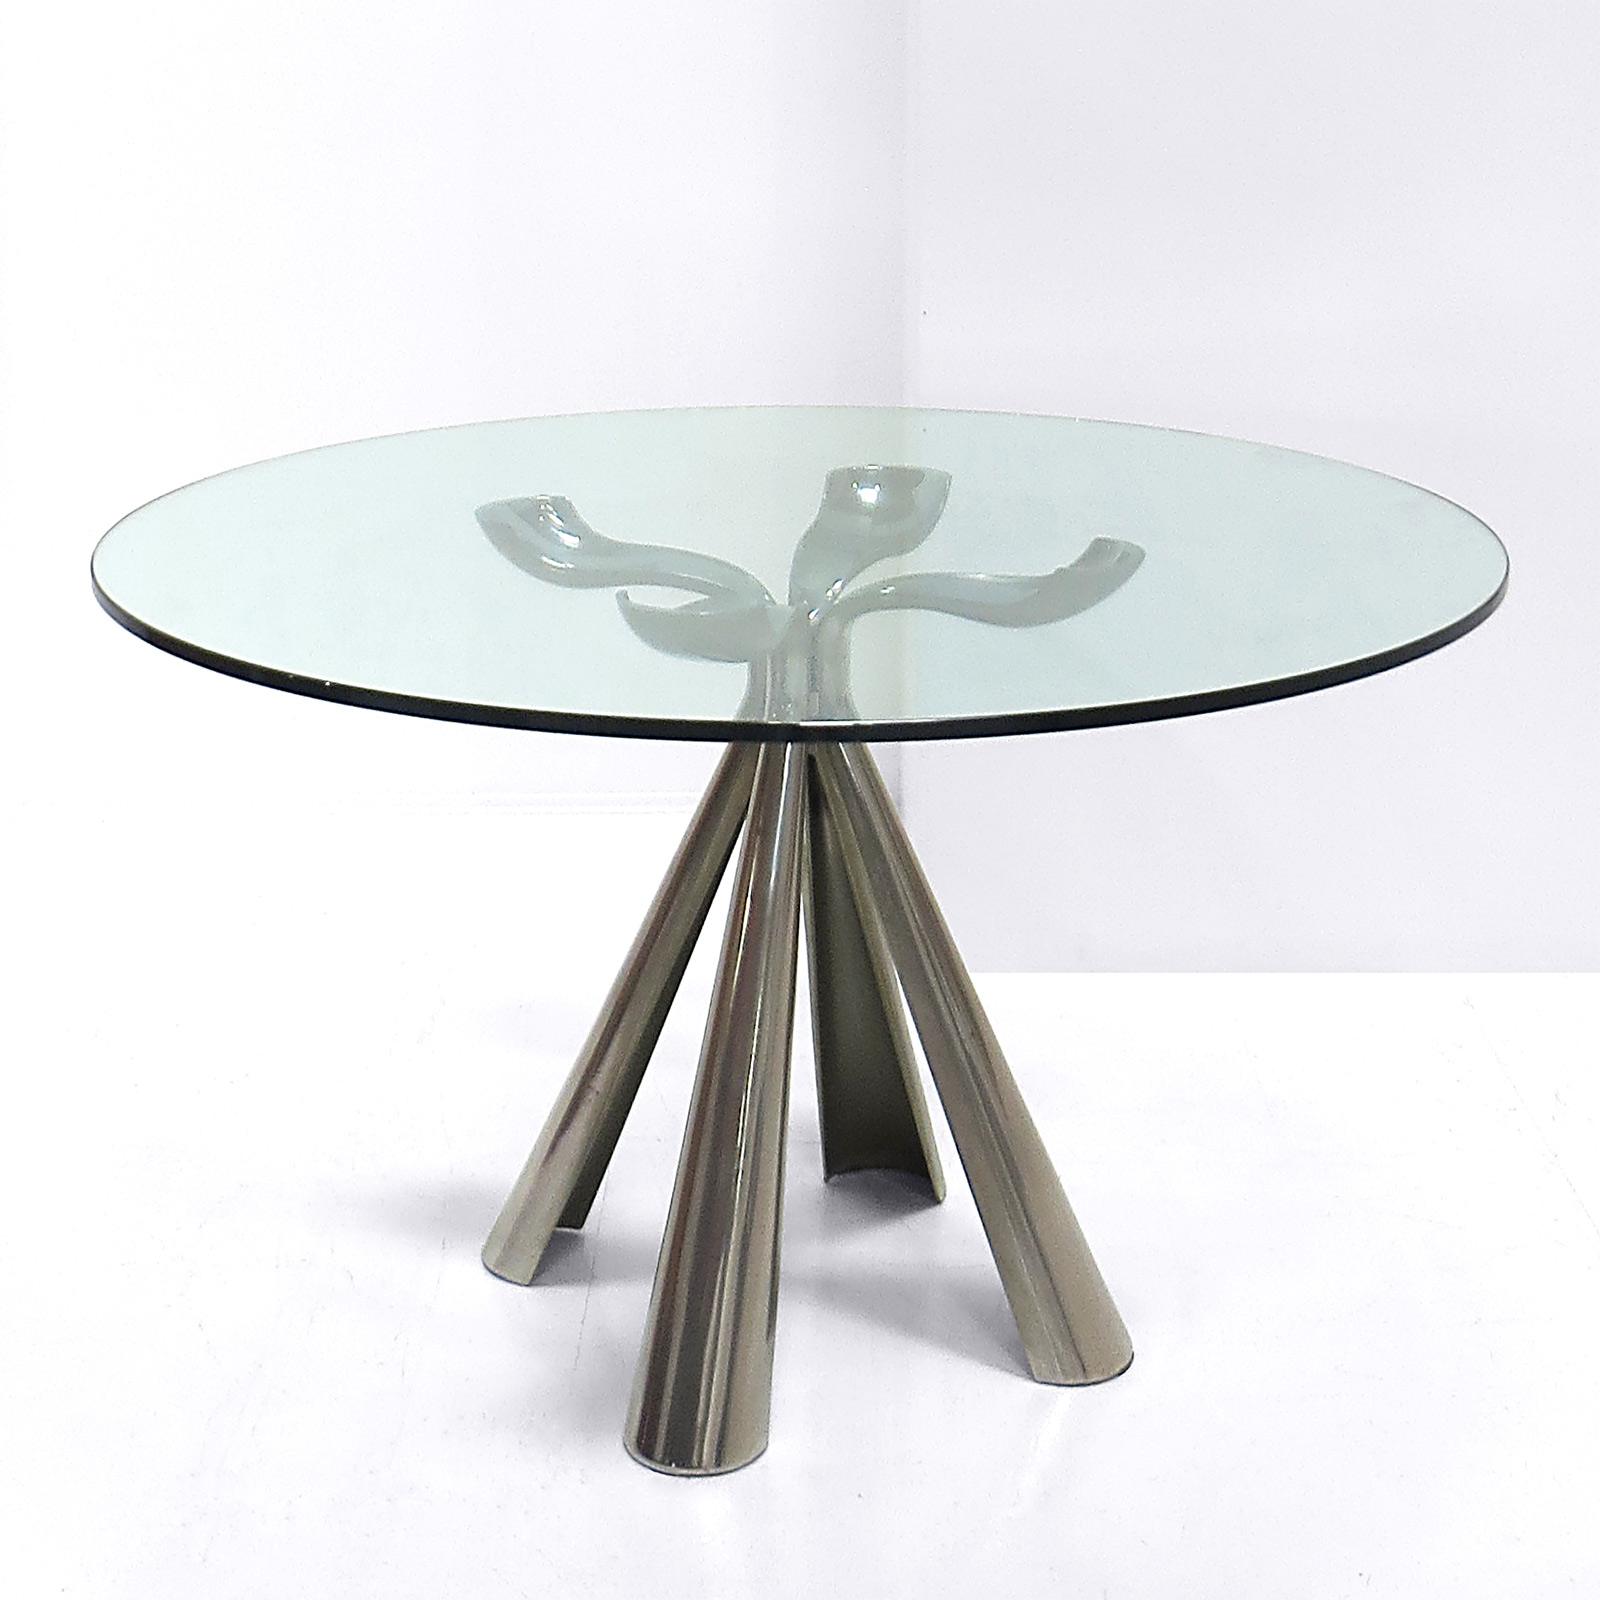 Saporiti Table 2